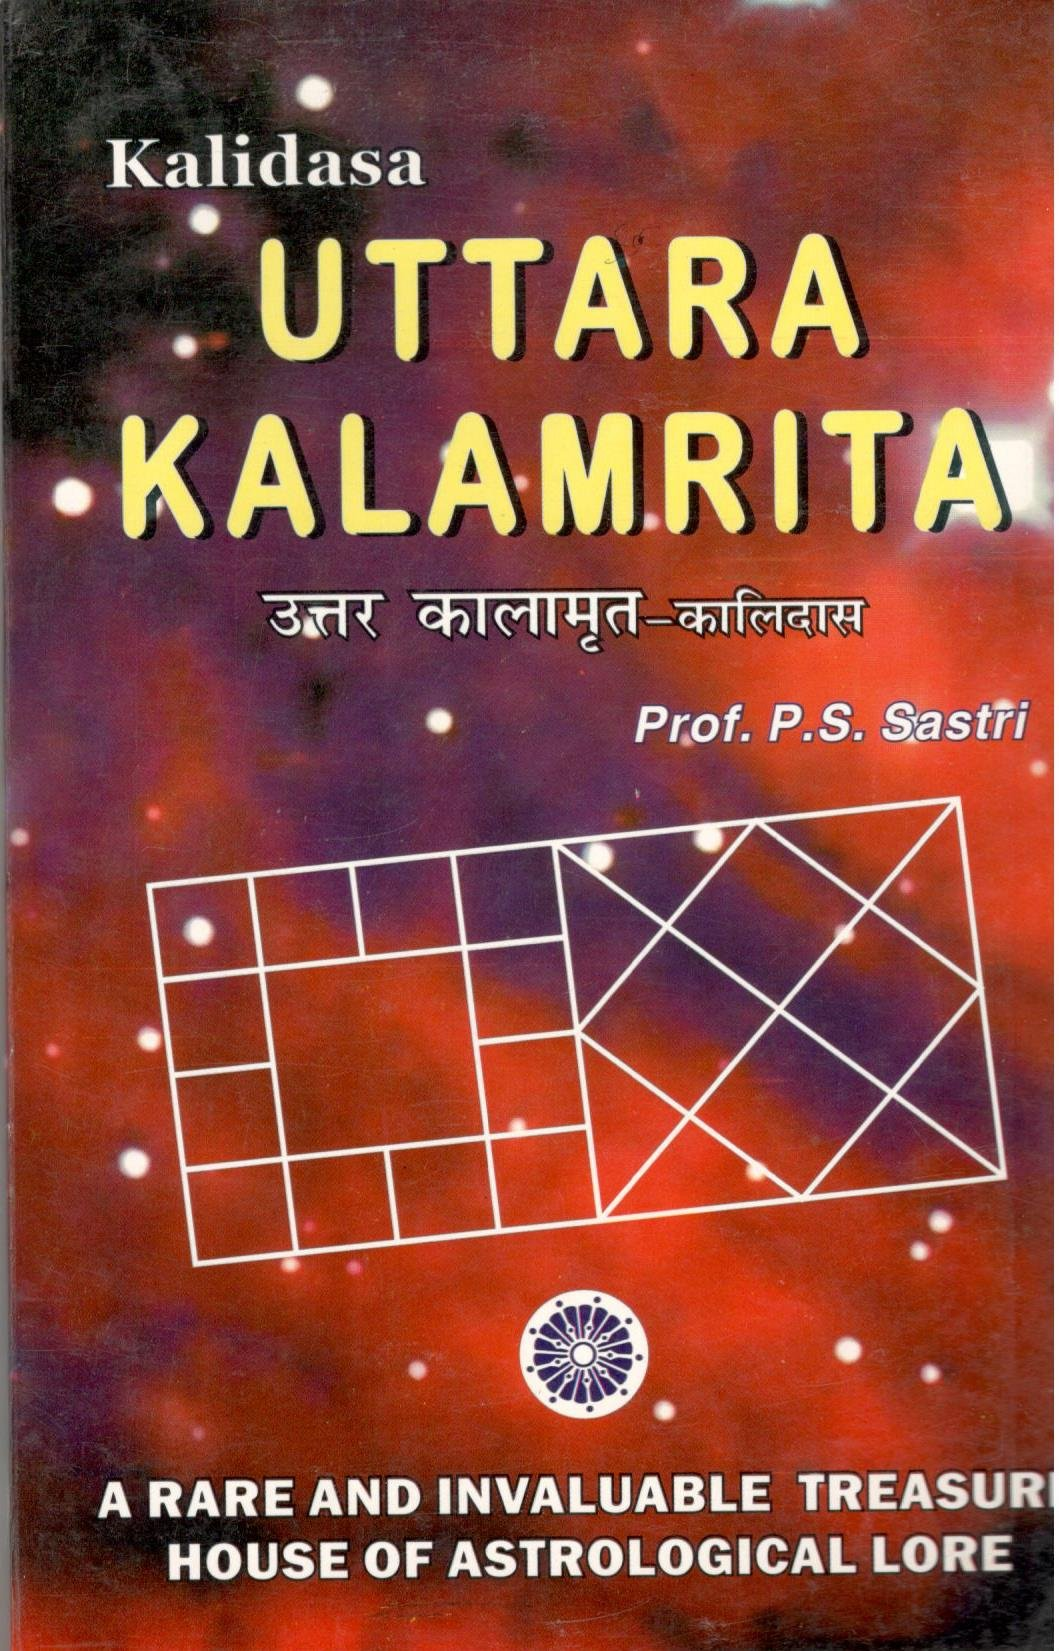 Amazon.in: Buy Uttara Kalamrita by Kalidasa: A Rare and Invaluable Treasure House of Astrological Lore Book Online at Low Prices in India | Uttara Kalamrita by Kalidasa: A Rare and Invaluable Treasure